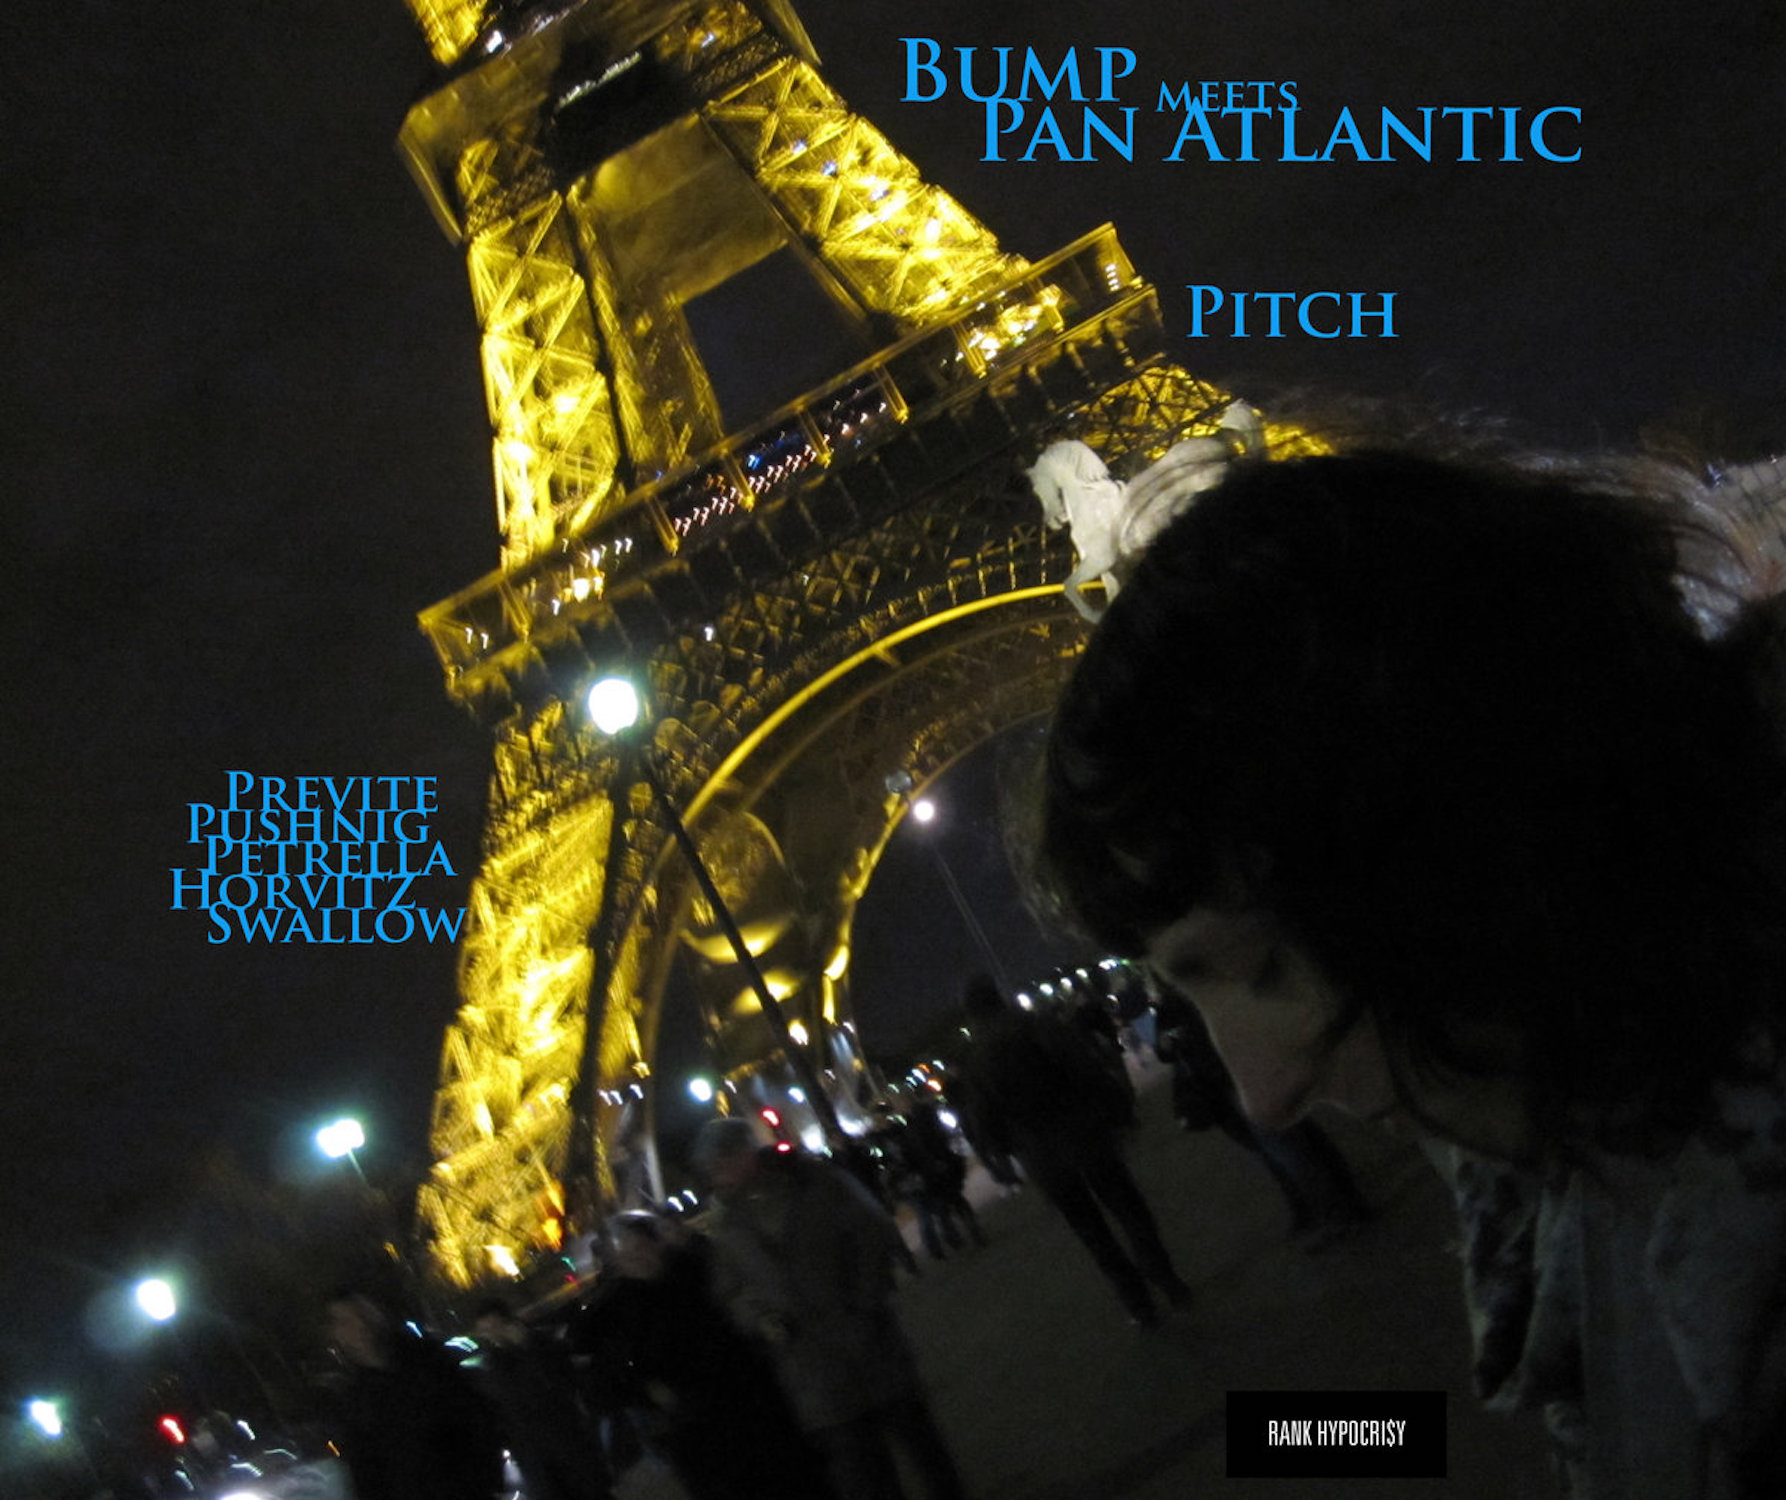 PITCH:   a melding of the Bump and Pan Atlantic   feat. GIANLUCA PETRELLA, WOLFGANG PUSCHNIG, WAYNE HORVITZ, STEVE SWALLOW